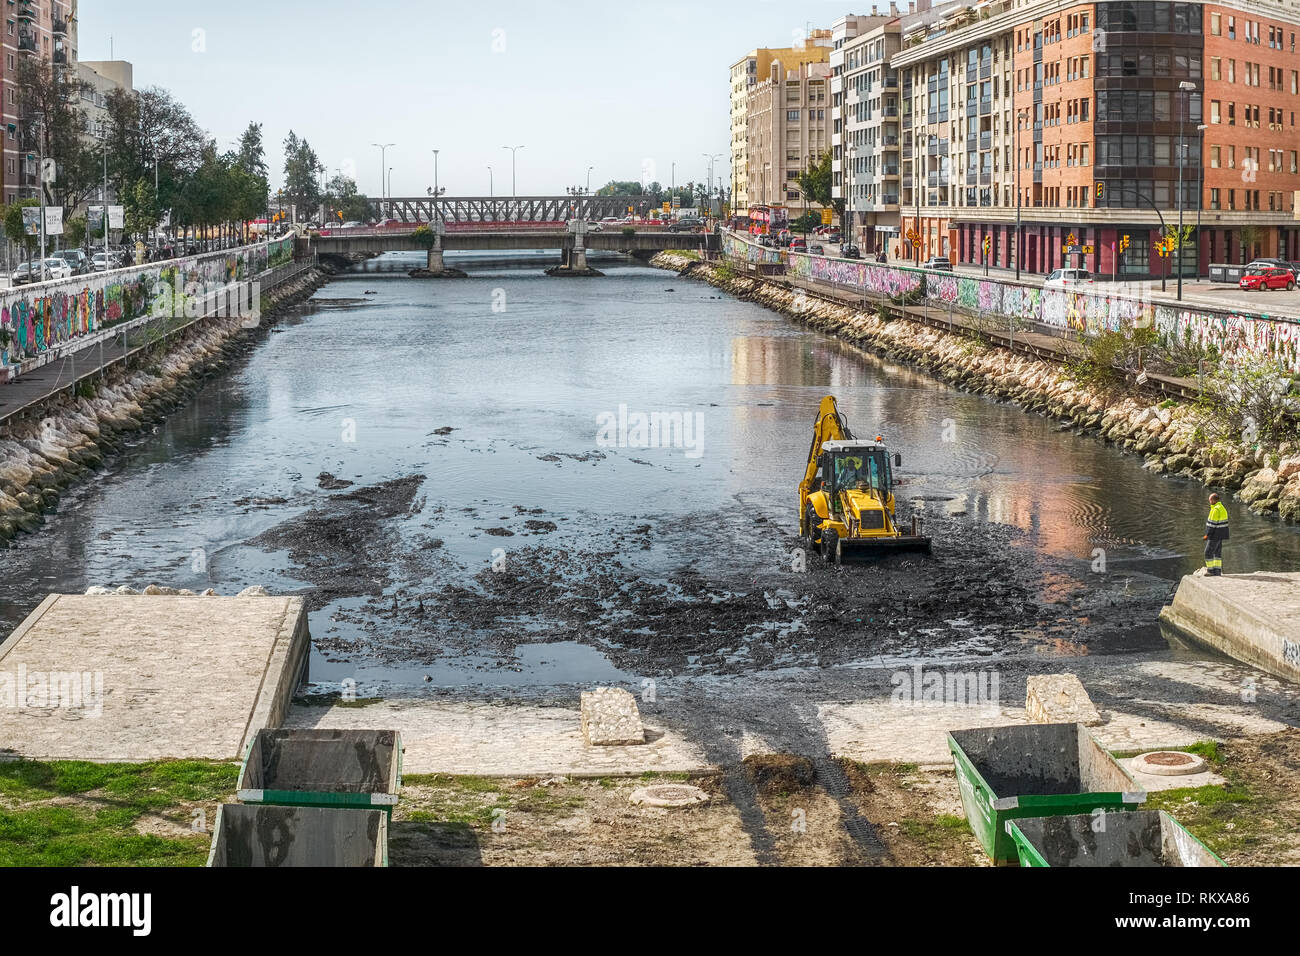 Malaga, Spain - March 23, 2018. Front end loader cleans dirty sewage rubbish in Guadalmedina river, Malaga city, Costa del sol, Spain - Stock Image